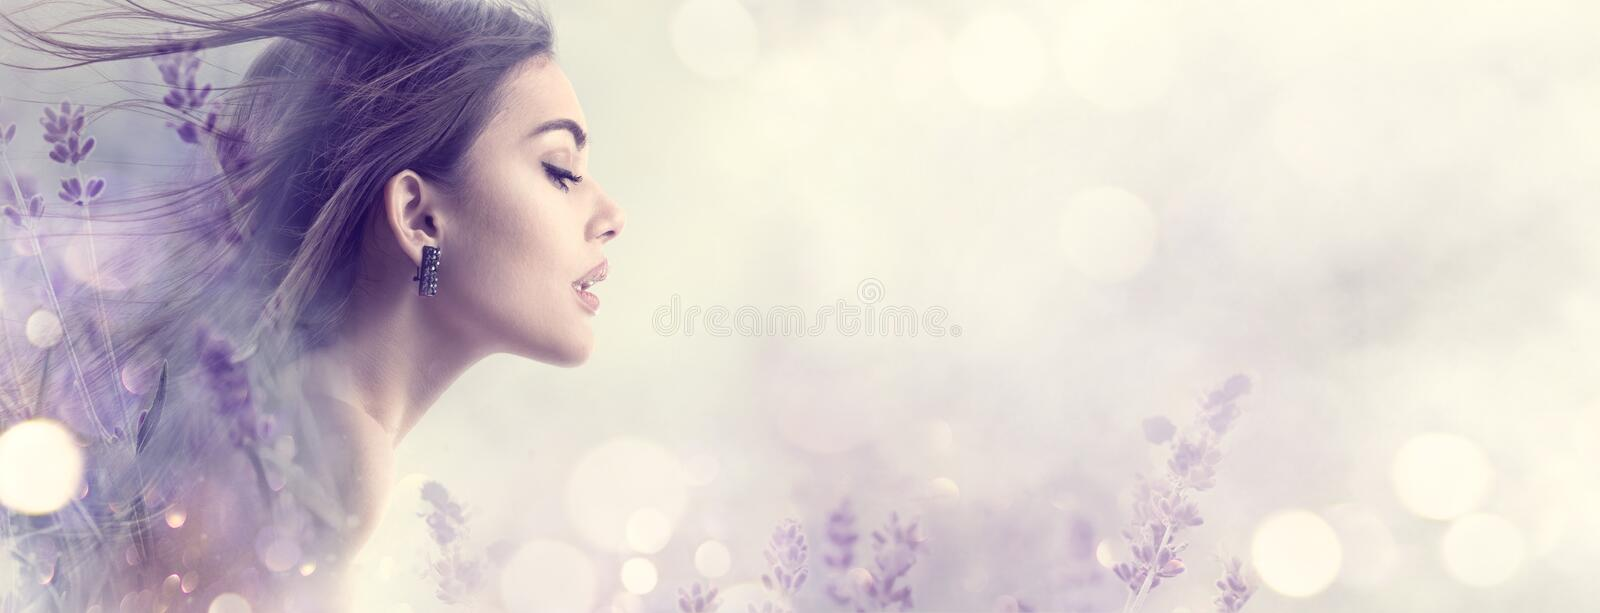 Beauty model girl with lavender flowers. Beautiful young brunette woman with flying long hair profile portrait. Fantasy watercolor stock image